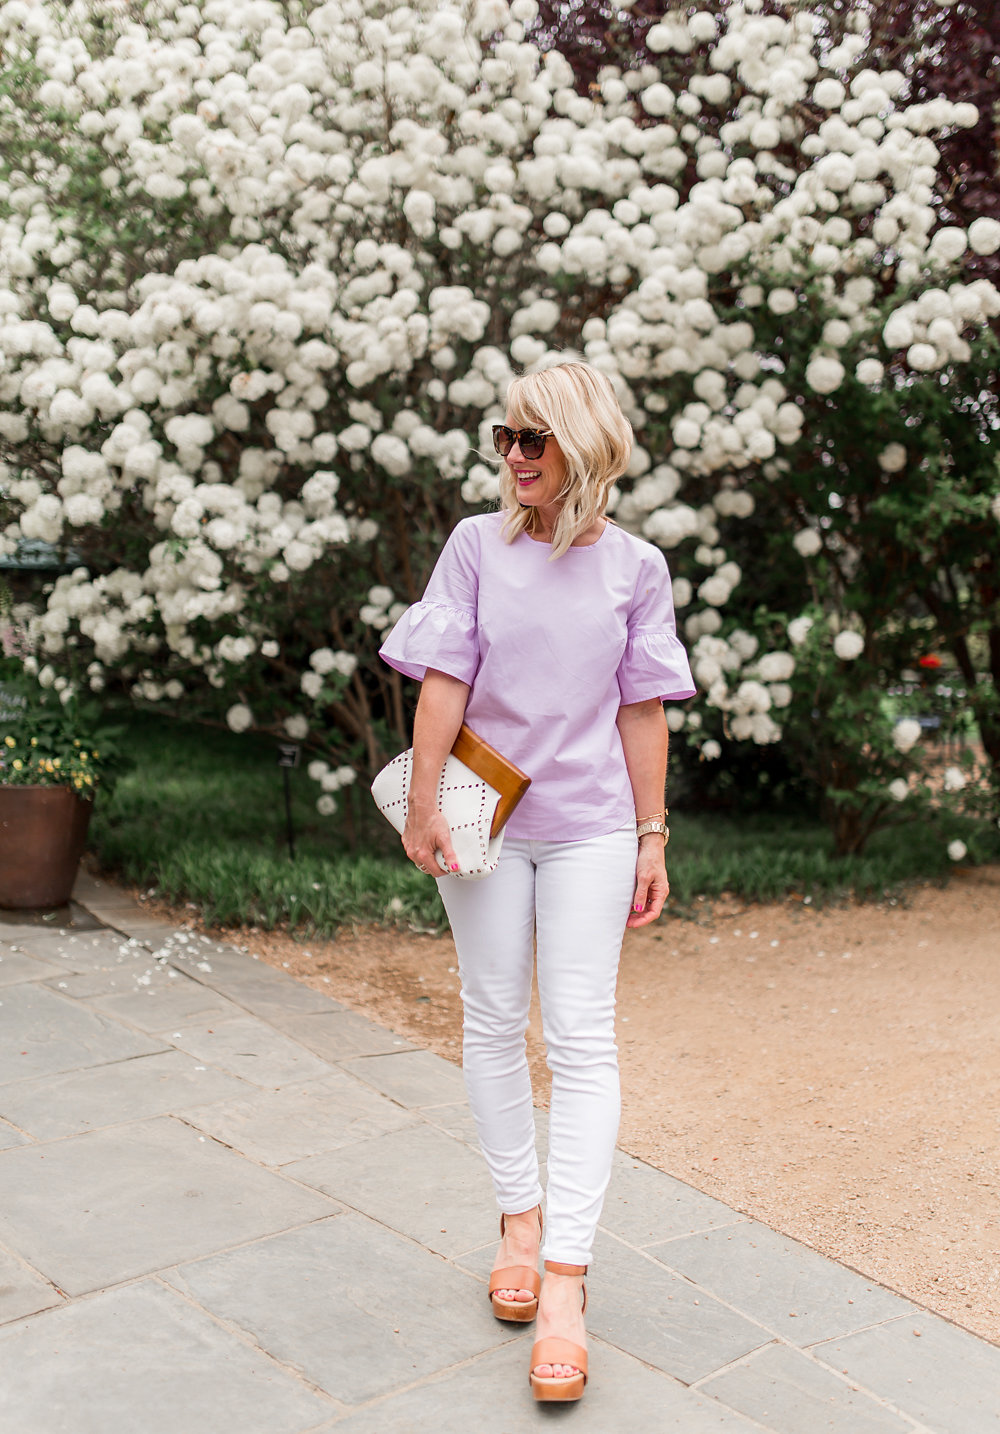 white jeans outfit photo at dallas arboretum in spring flowers blooming